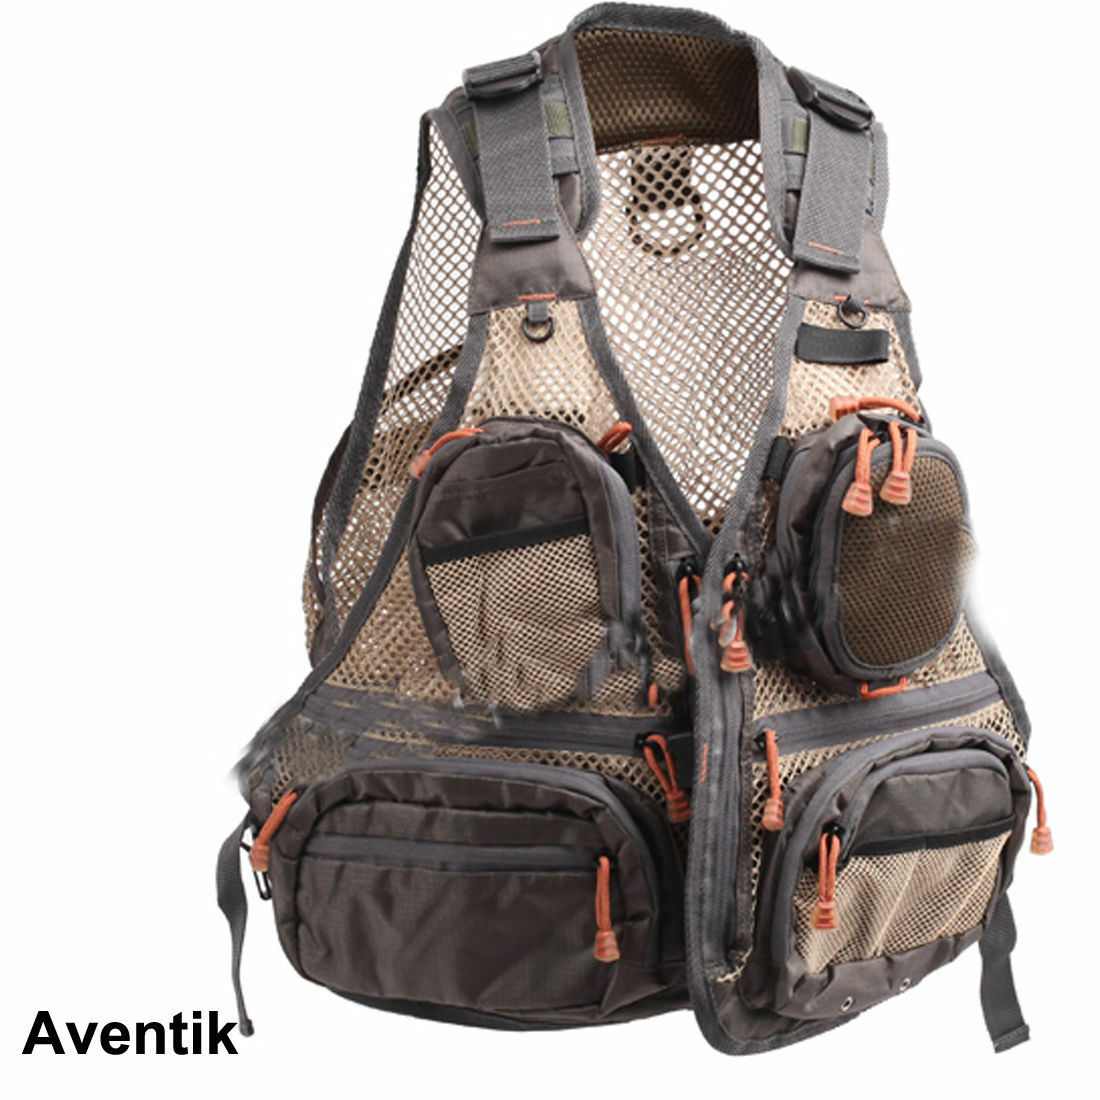 Aventik Super Light Mesh Fabric Fly Fishing Vest,Fishing Mesh Vest Wading NEW